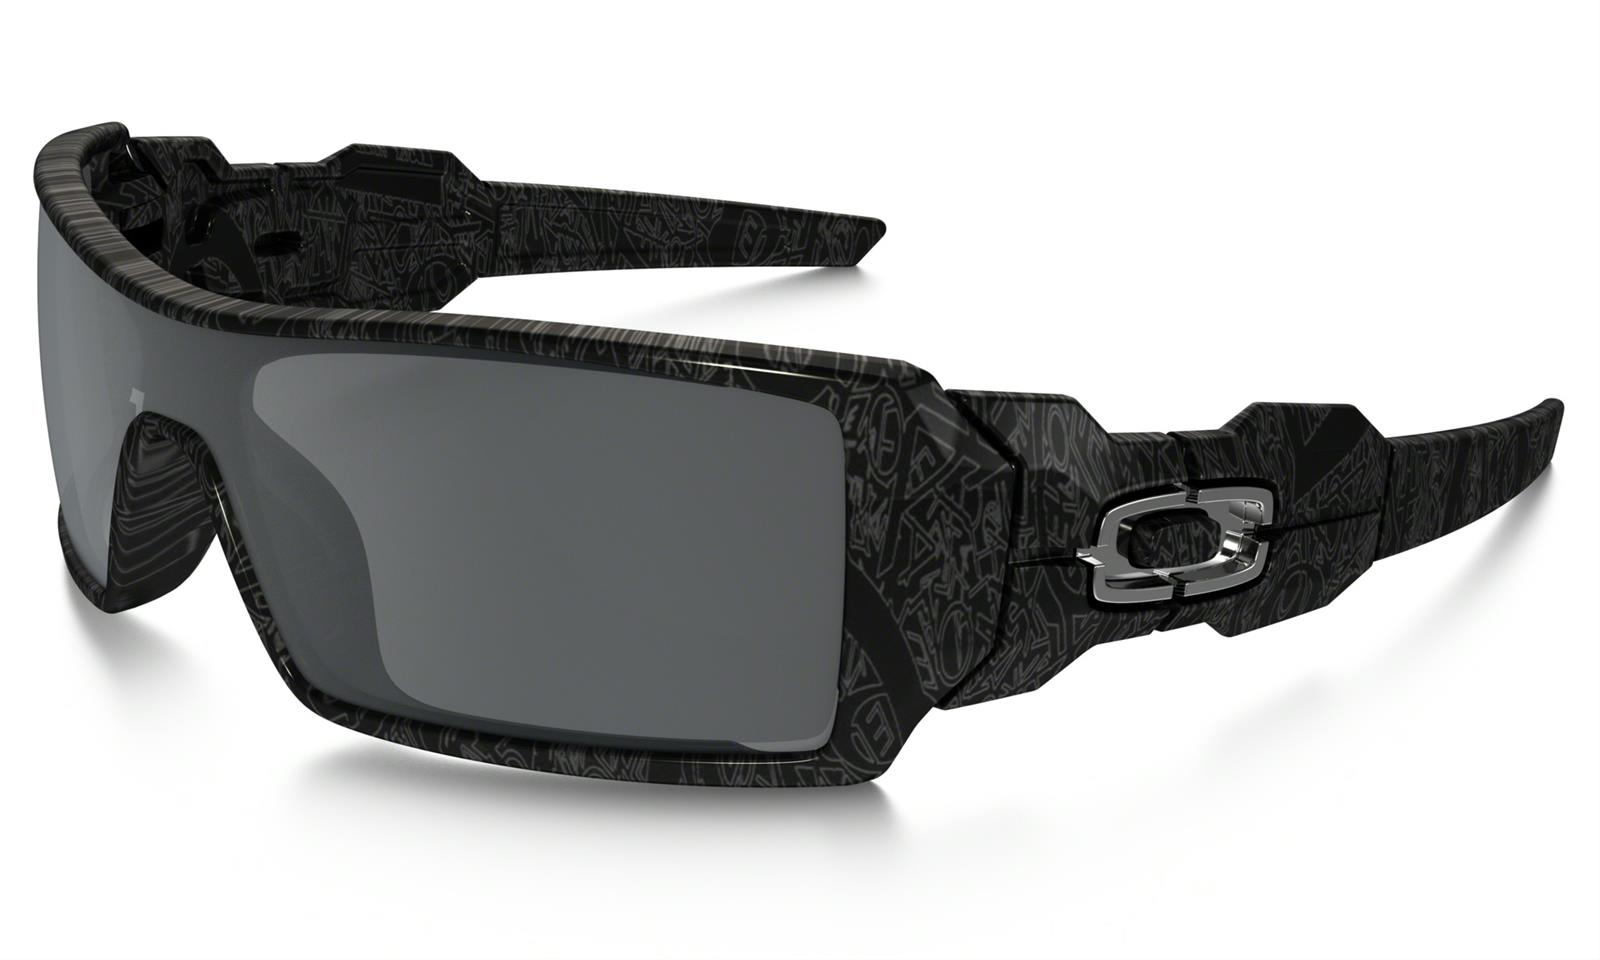 490a096c64 Oakley Oil Rig Sunglasses 24-058 - Free Shipping on Orders Over $99 at  Summit Racing